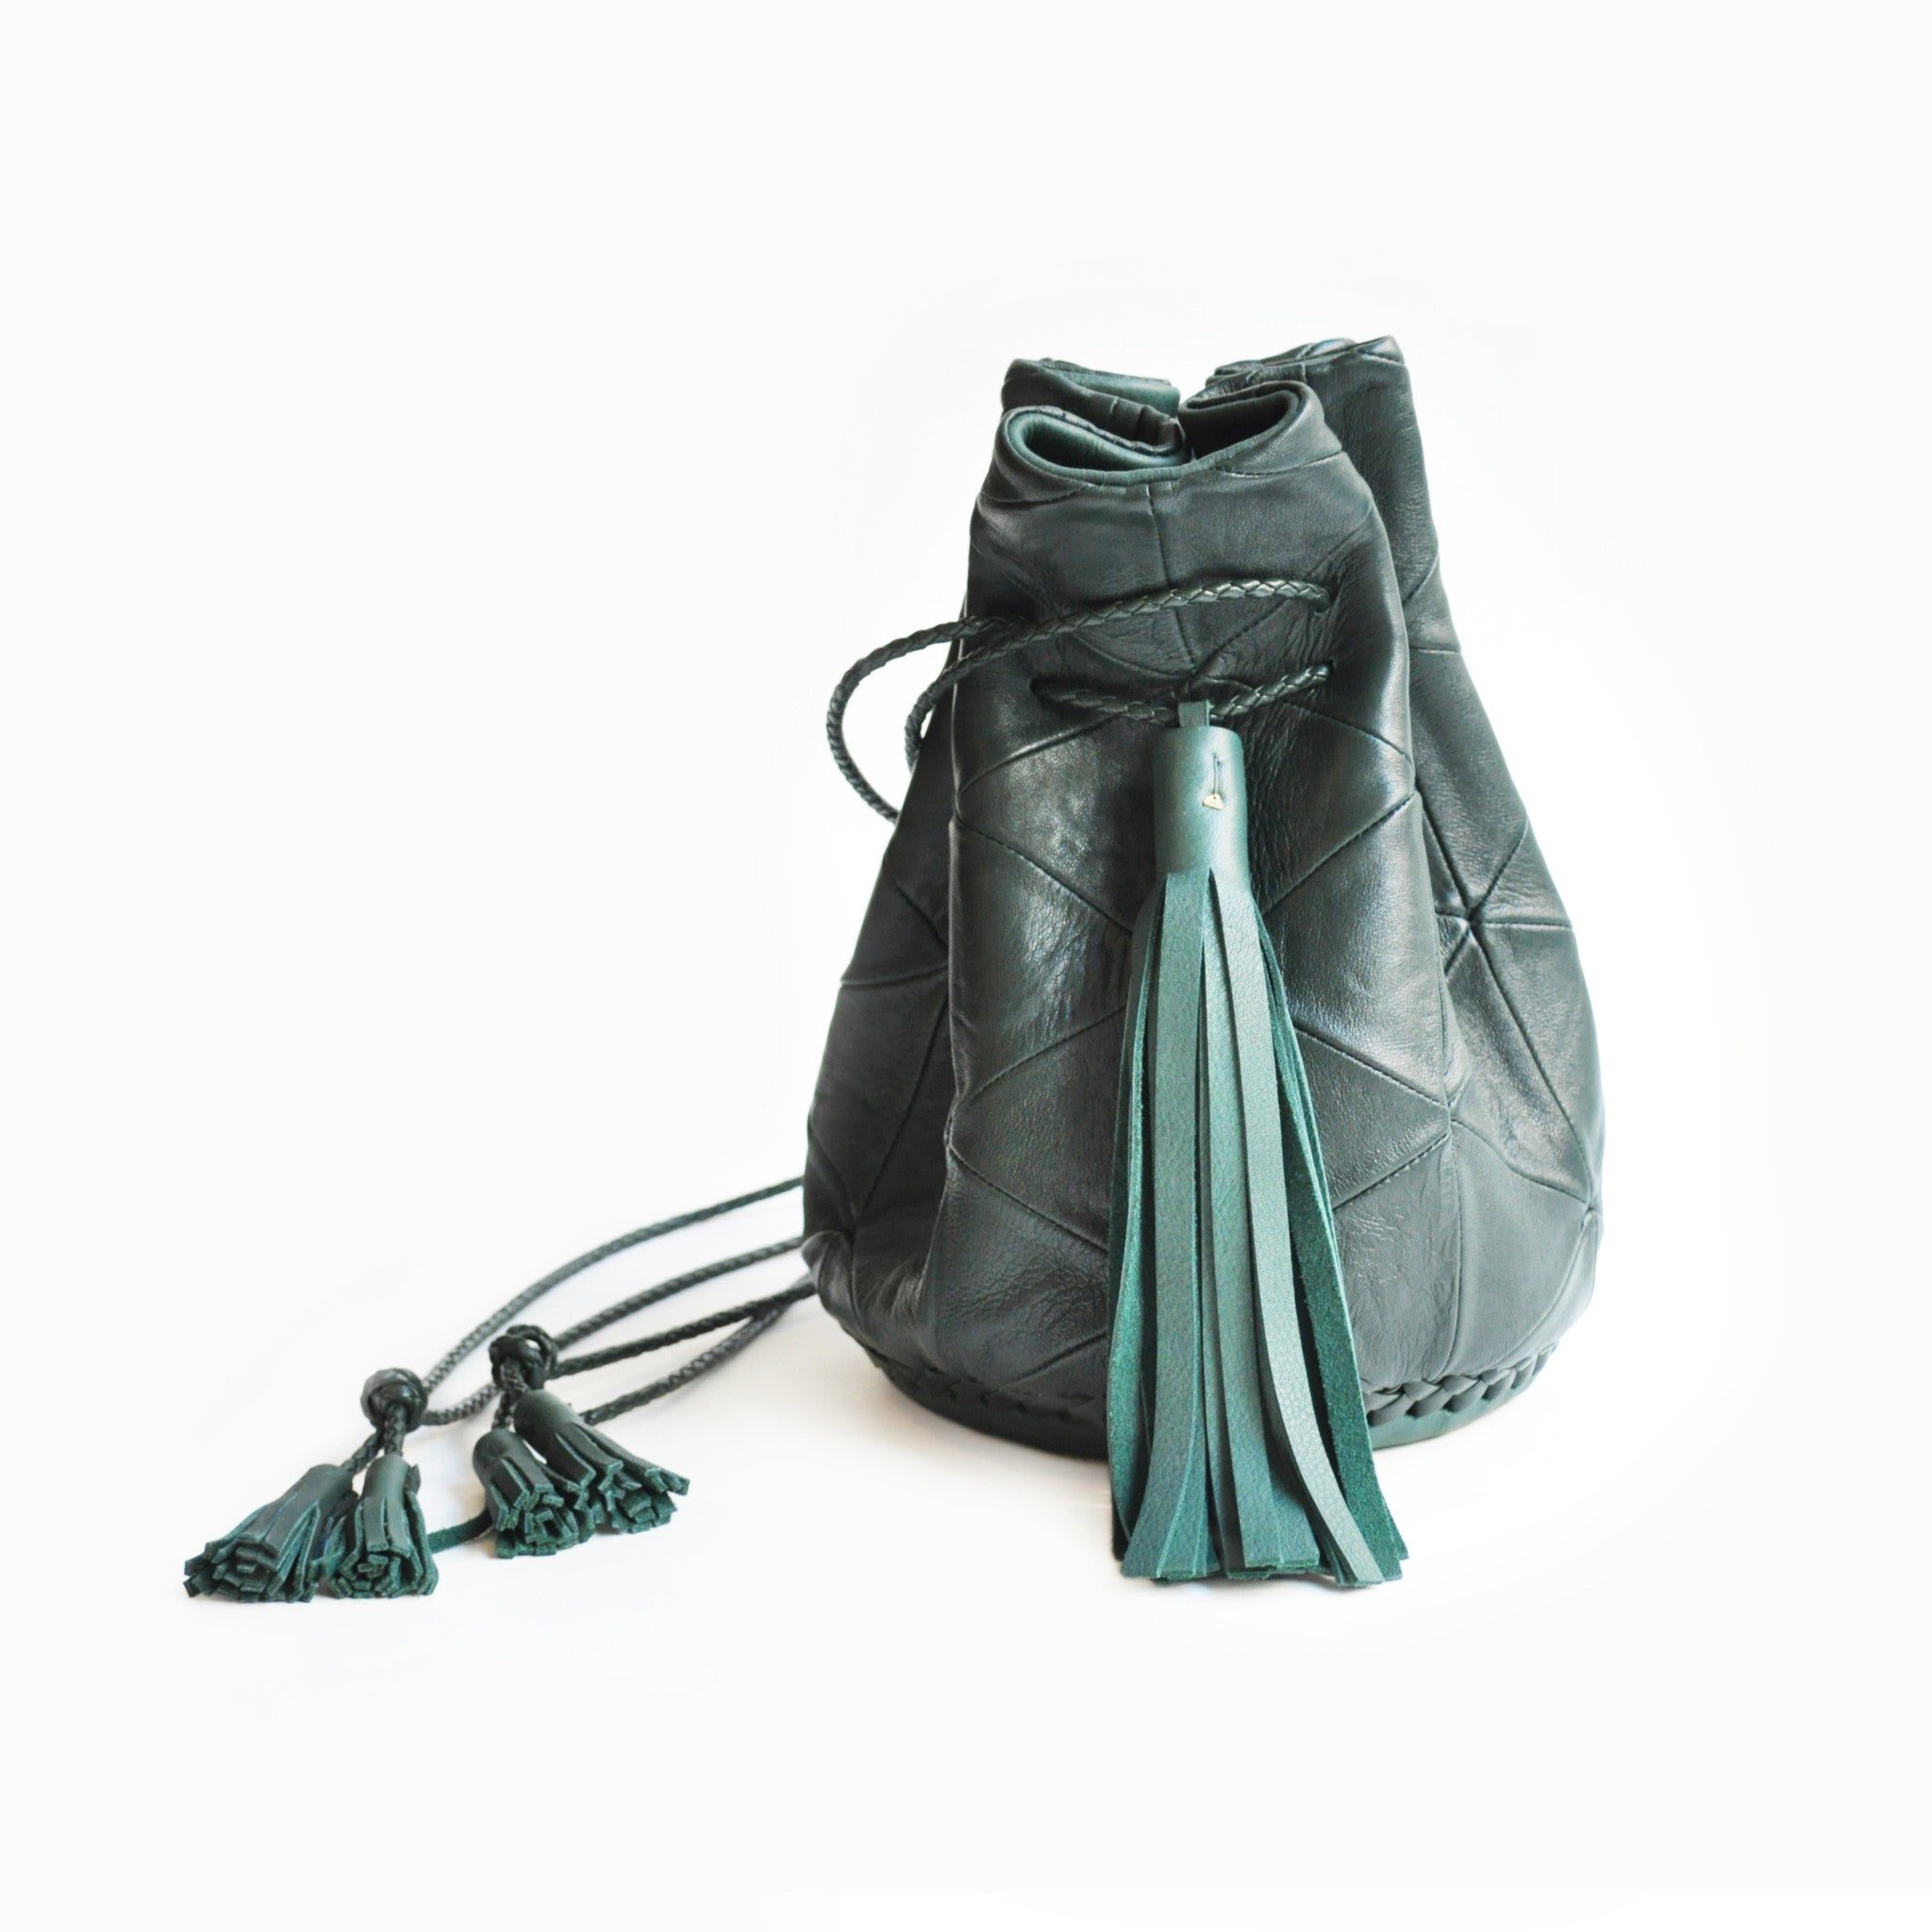 Green Leather Triangle Patchwork Bullet Bag Wendy Nichol Leather Handbag Purse Designer Bucket Bag Handmade in NYC